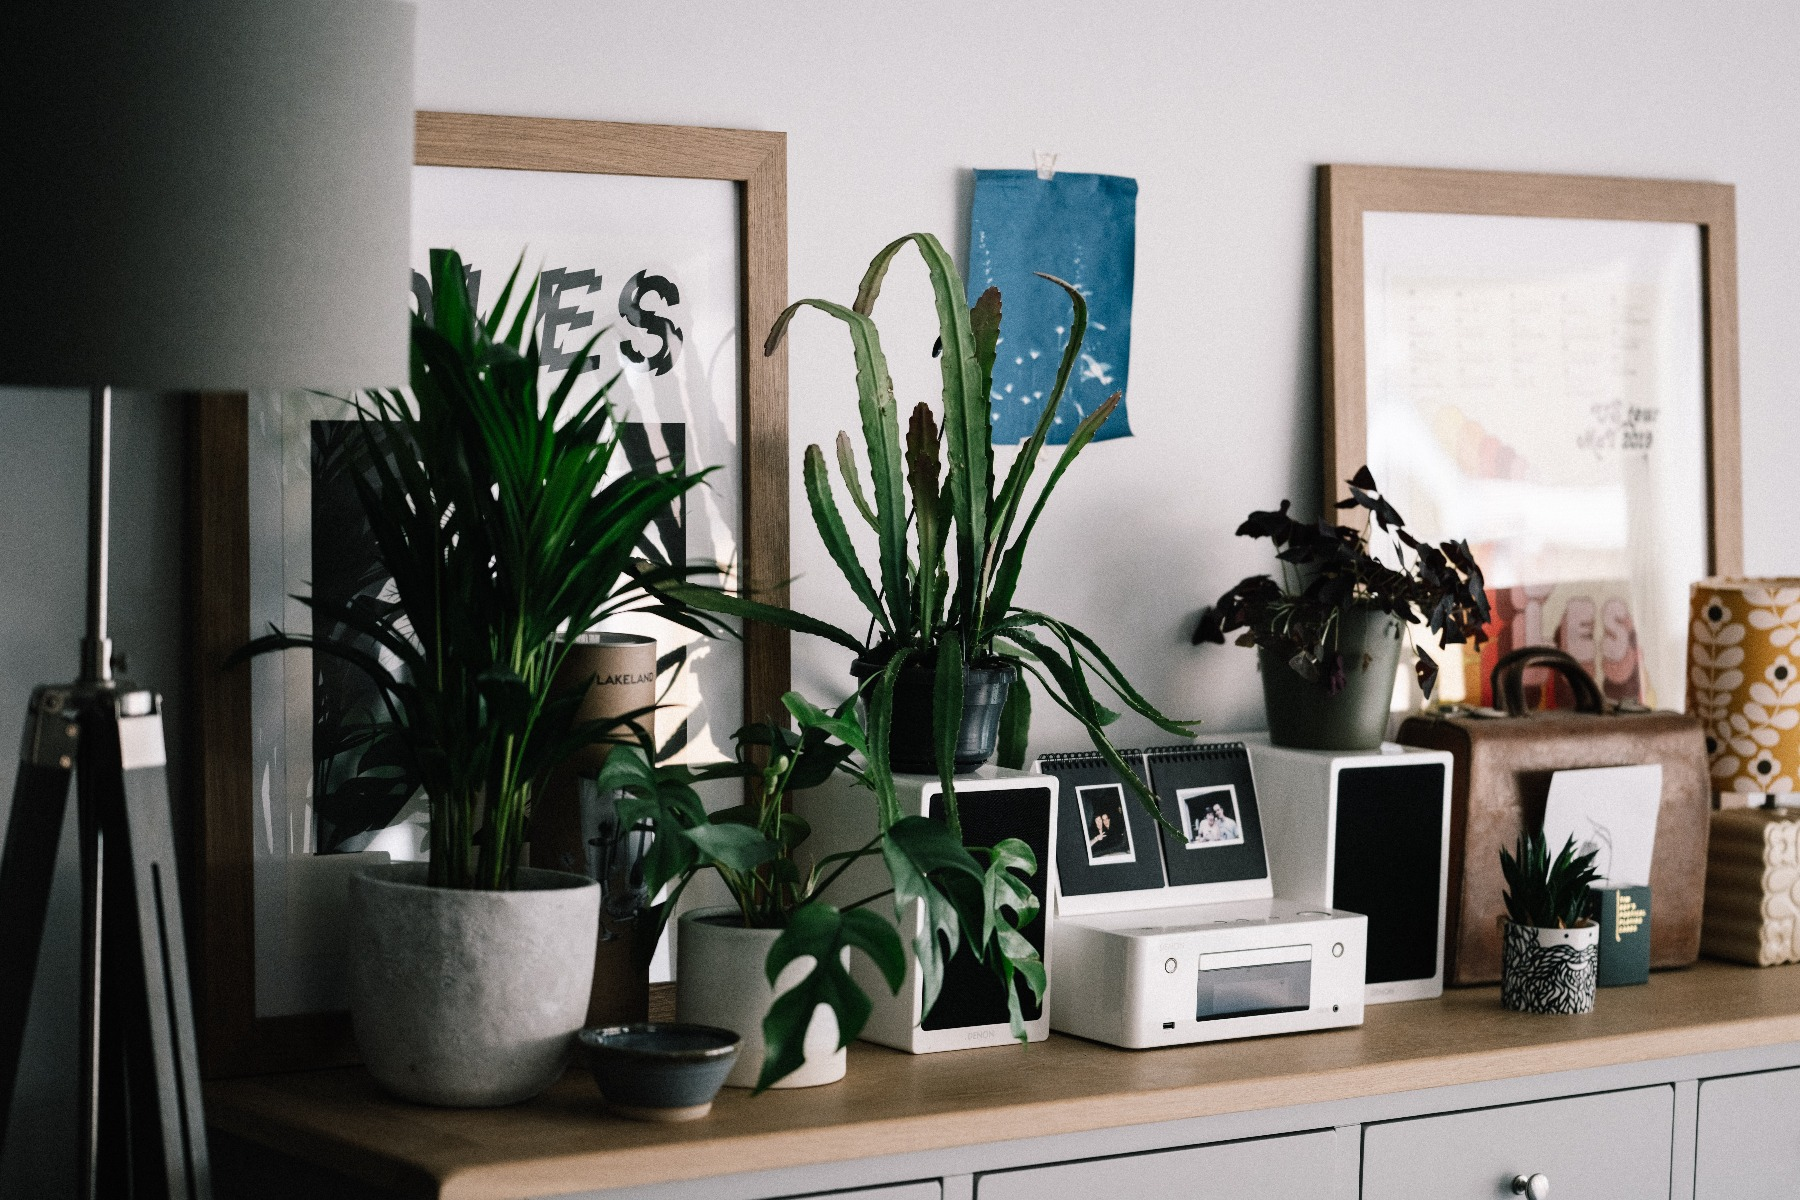 House plants within a lounge